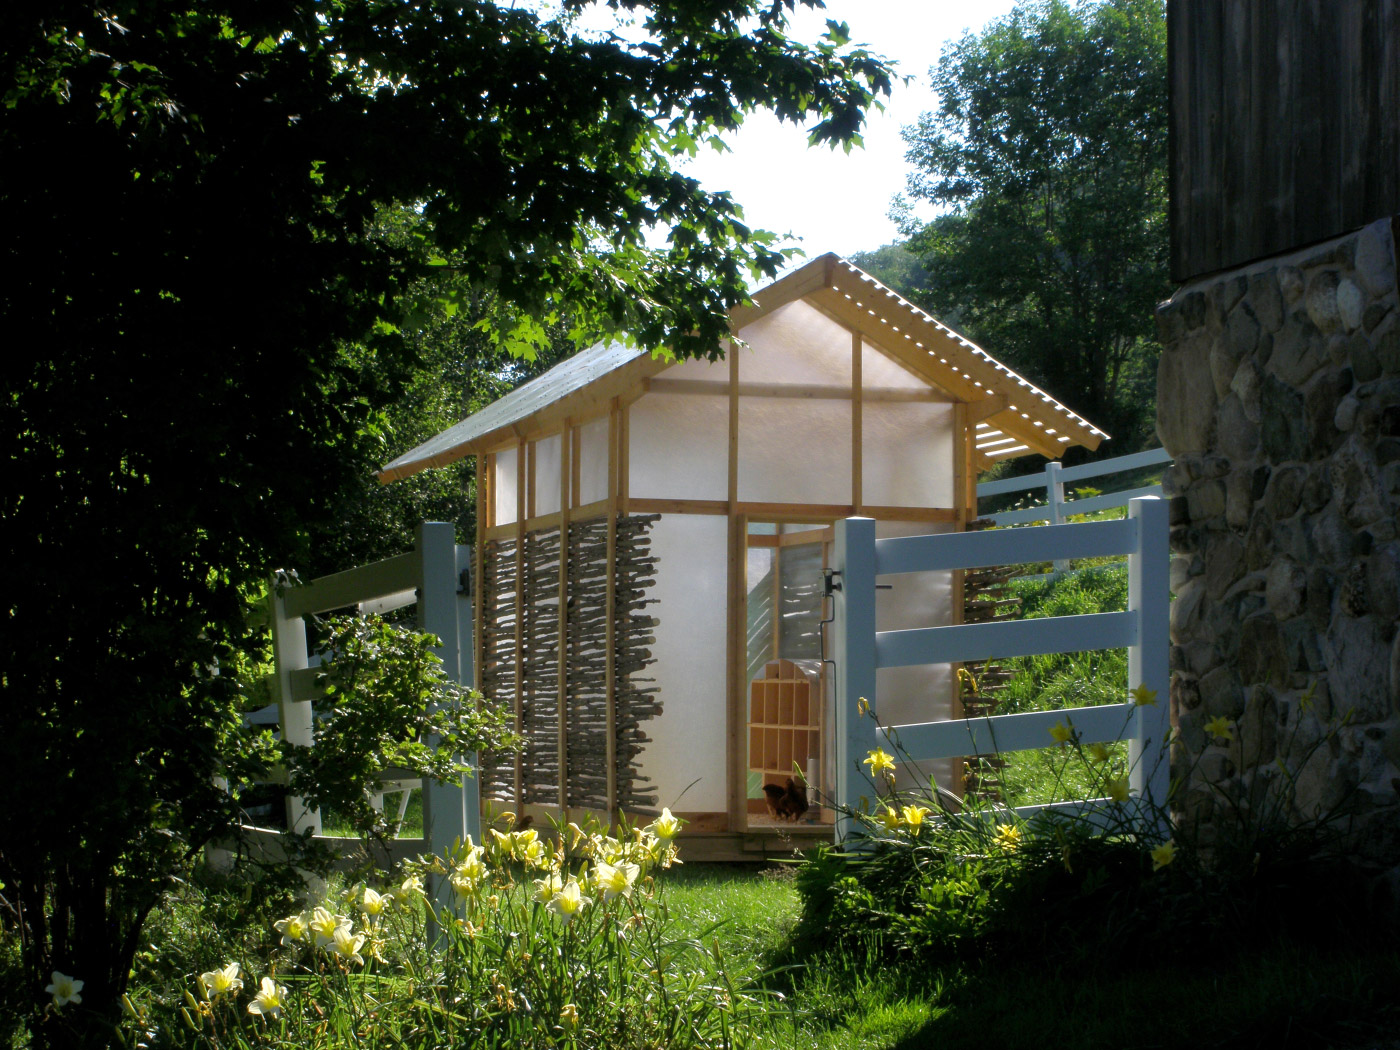 The 2011 studio's Chicken Chapel, a fiberglass-wrapped chicken coop.